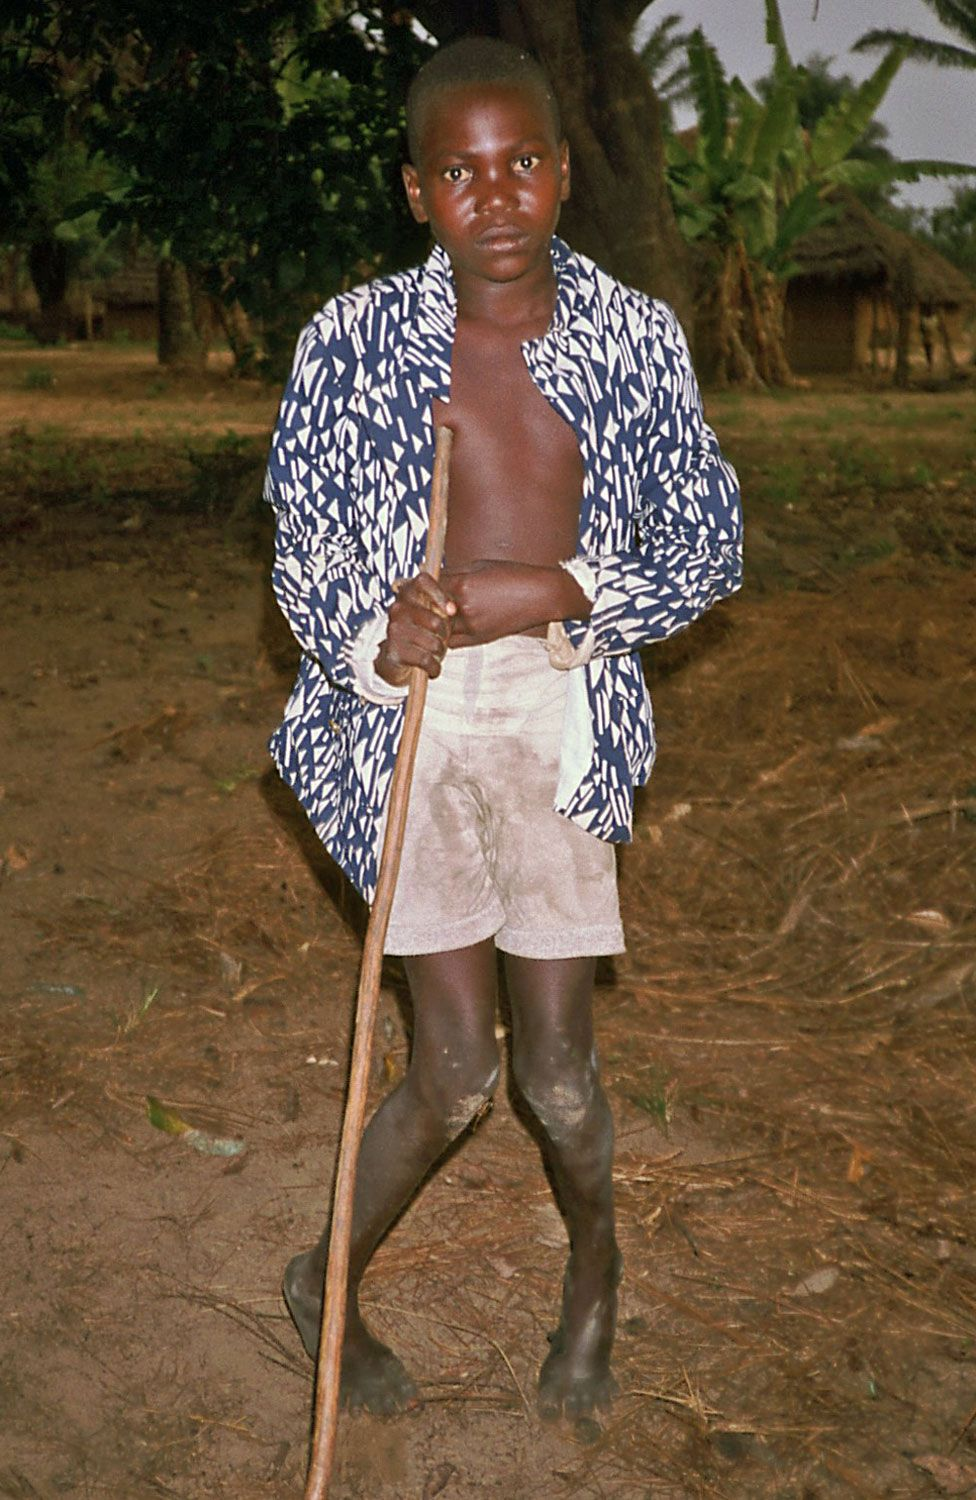 A boy with Konzo, photographed in Zaire in September 1986